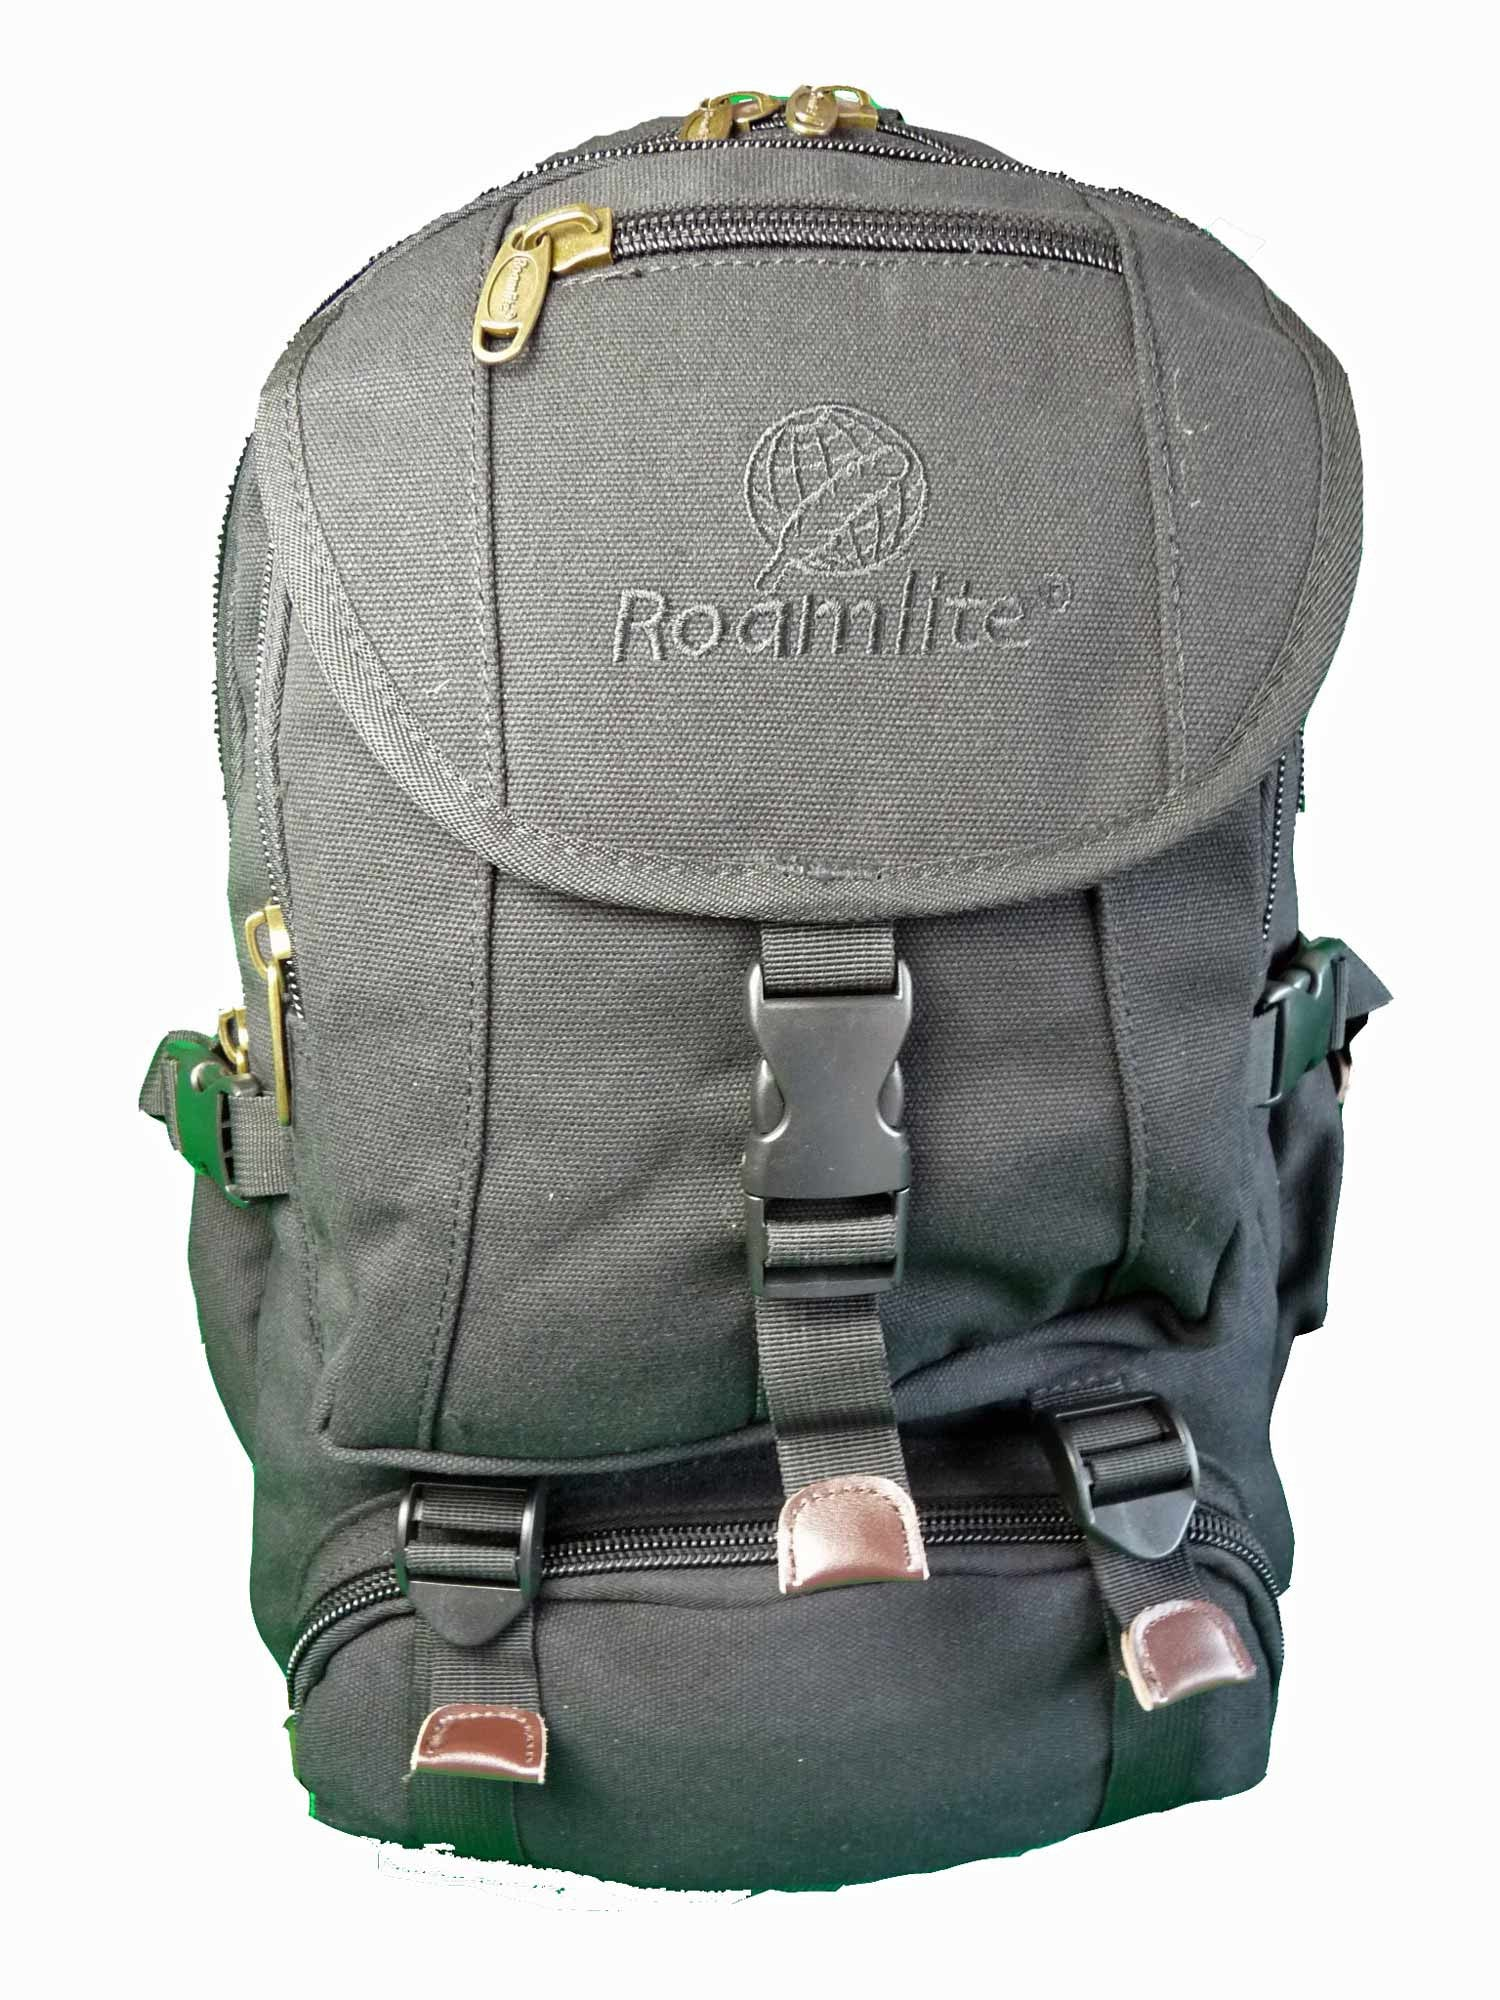 MacBook Air Backpack Rucksack Bag RL25K front view